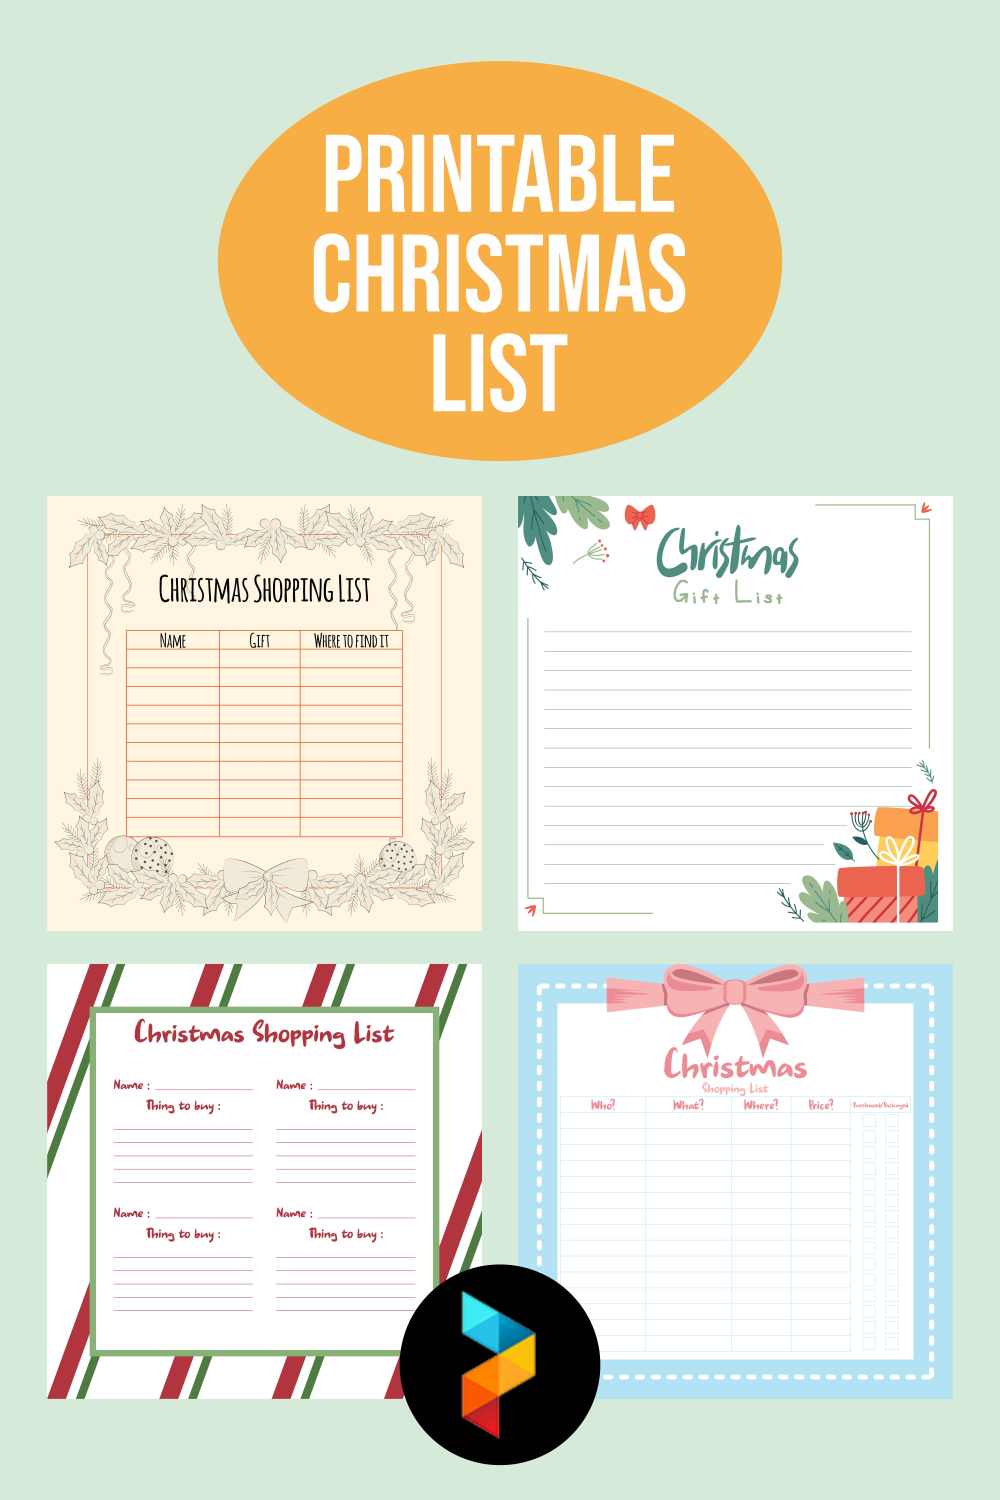 Printable Christmas List